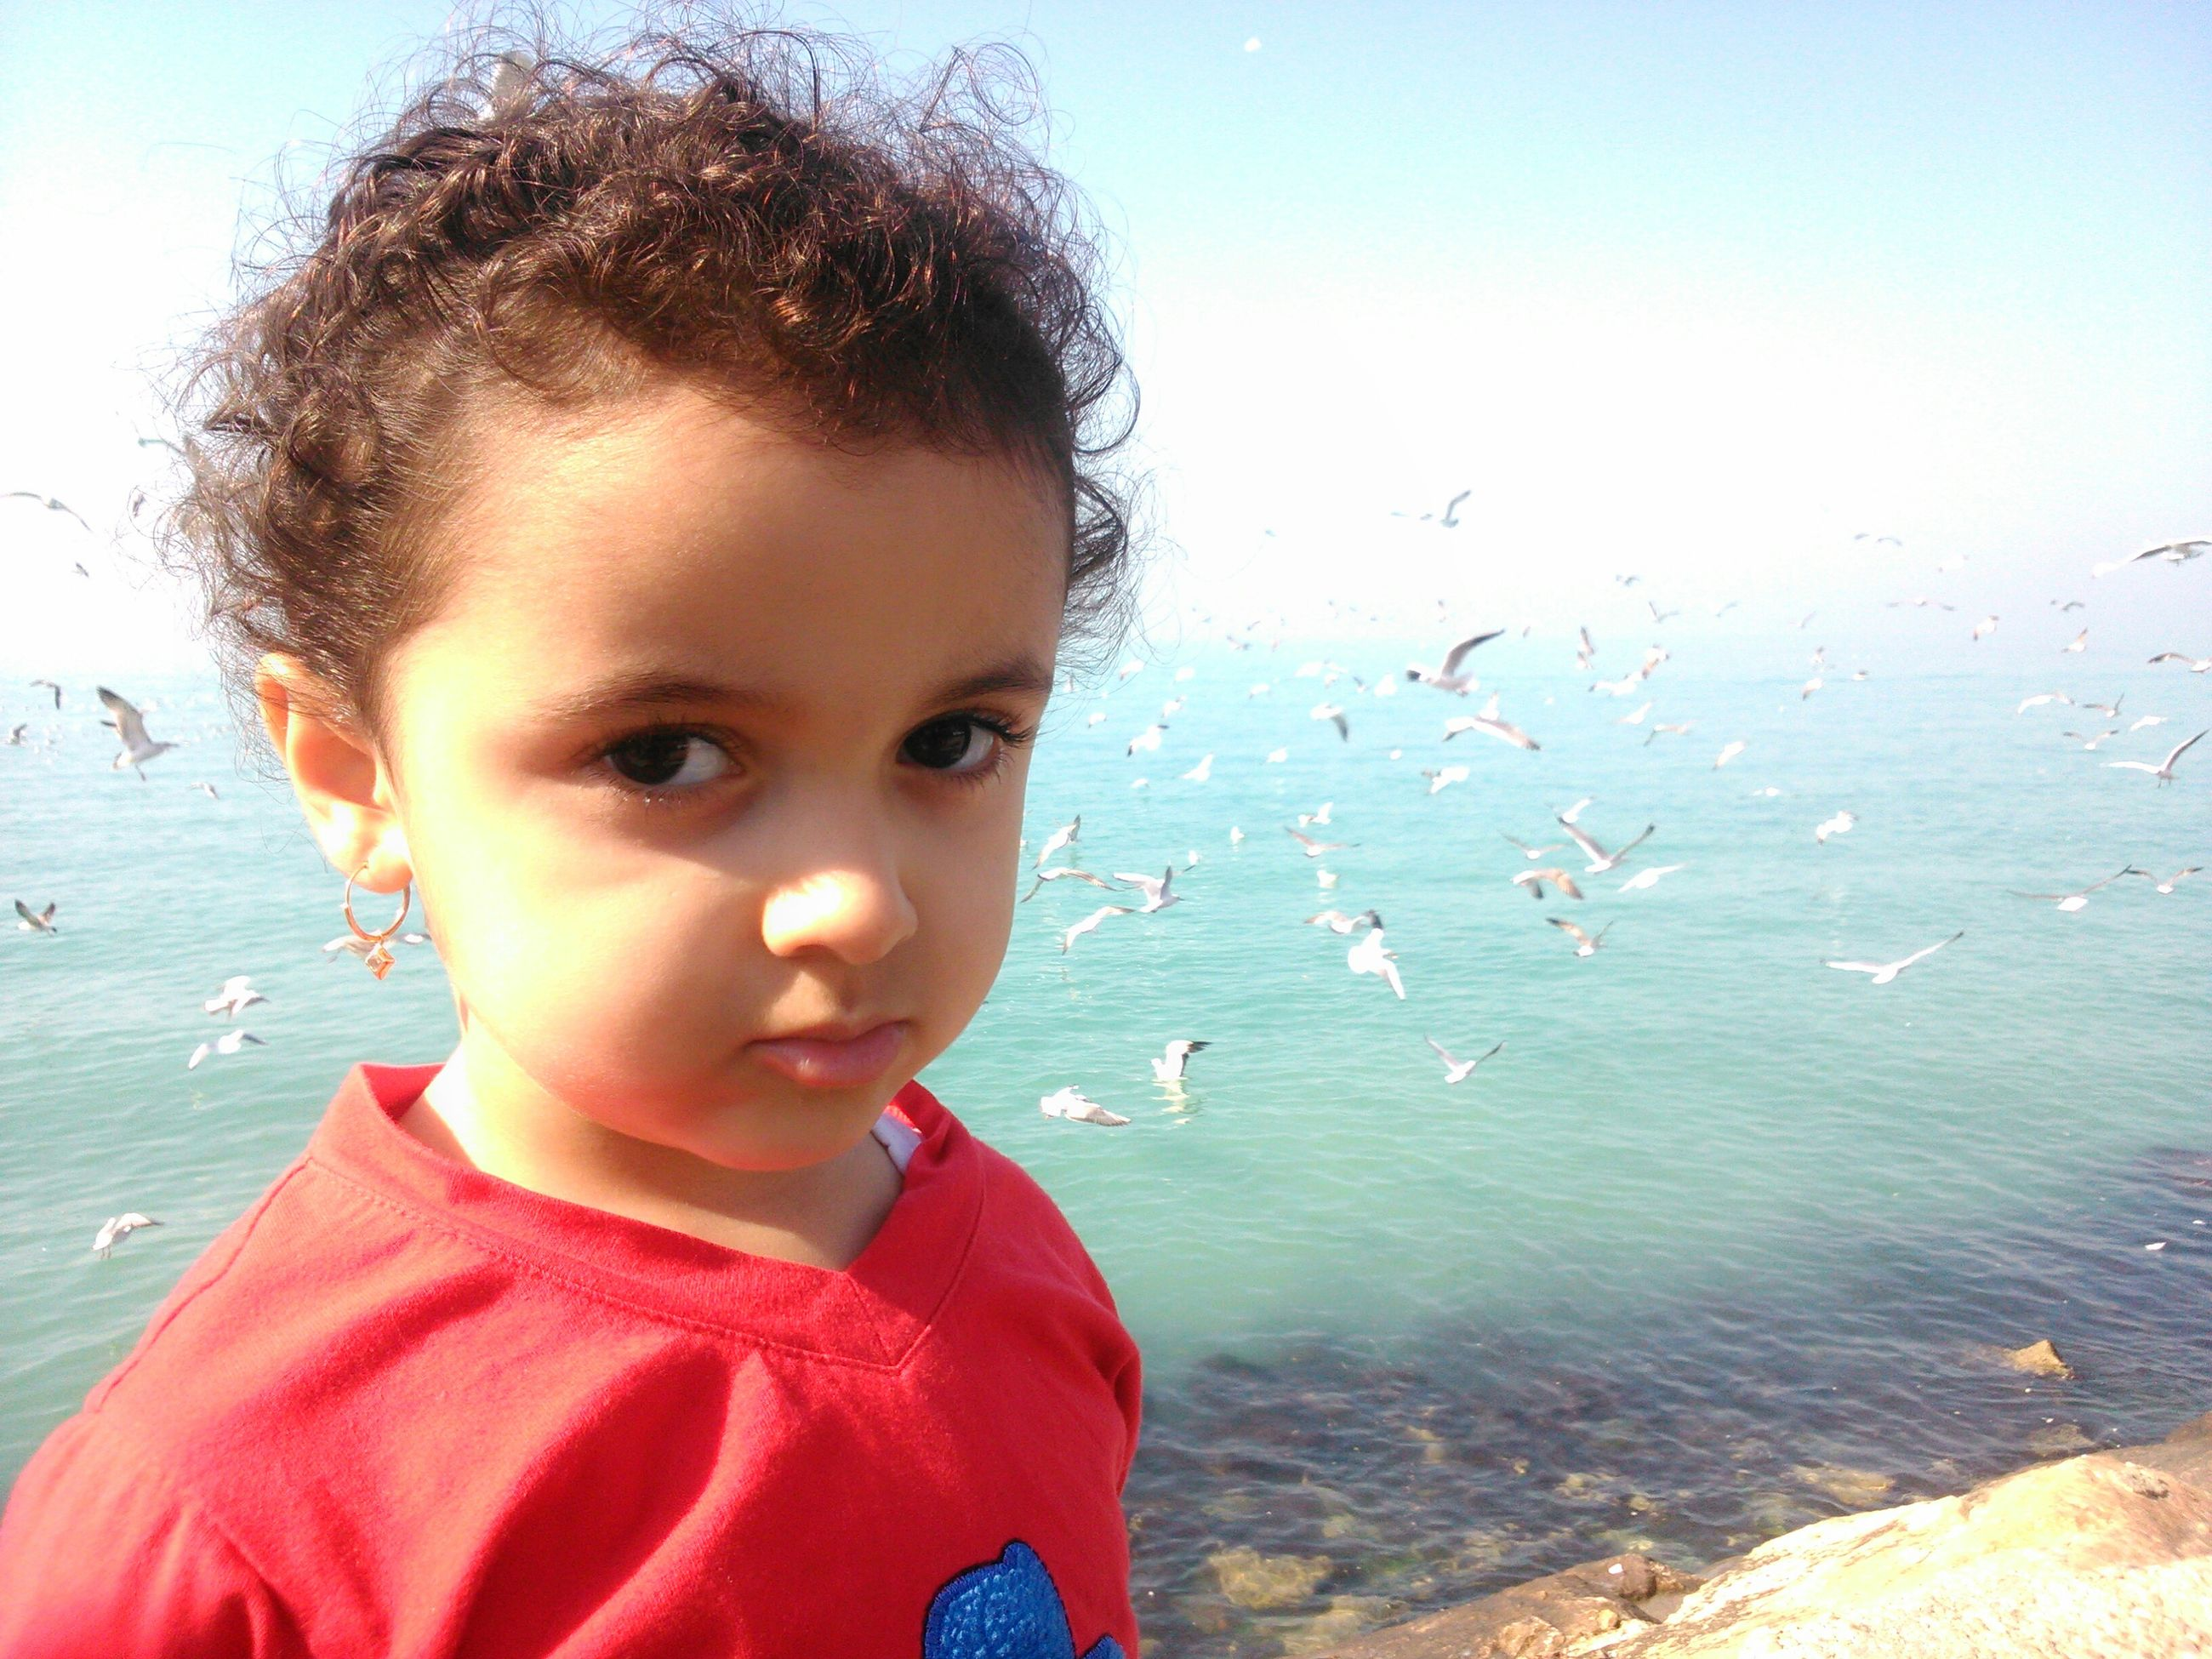 childhood, water, person, elementary age, innocence, cute, headshot, lifestyles, boys, leisure activity, looking at camera, girls, portrait, close-up, casual clothing, smiling, focus on foreground